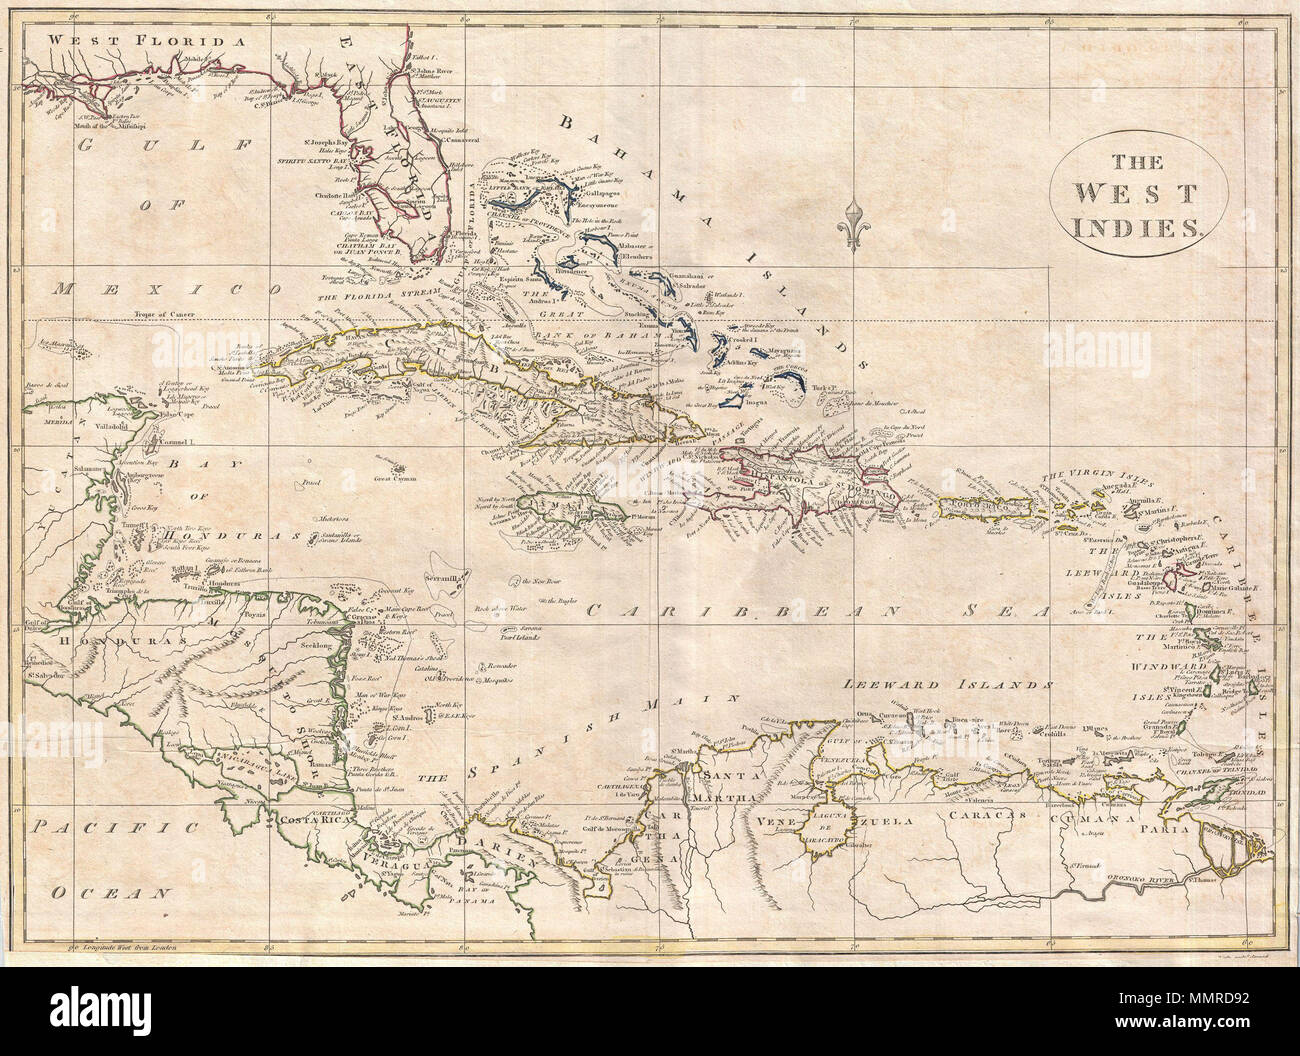 Map Of Florida Cuba And Puerto Rico.English A Fine 1799 Map Of The West Indies By The English Mapmaker